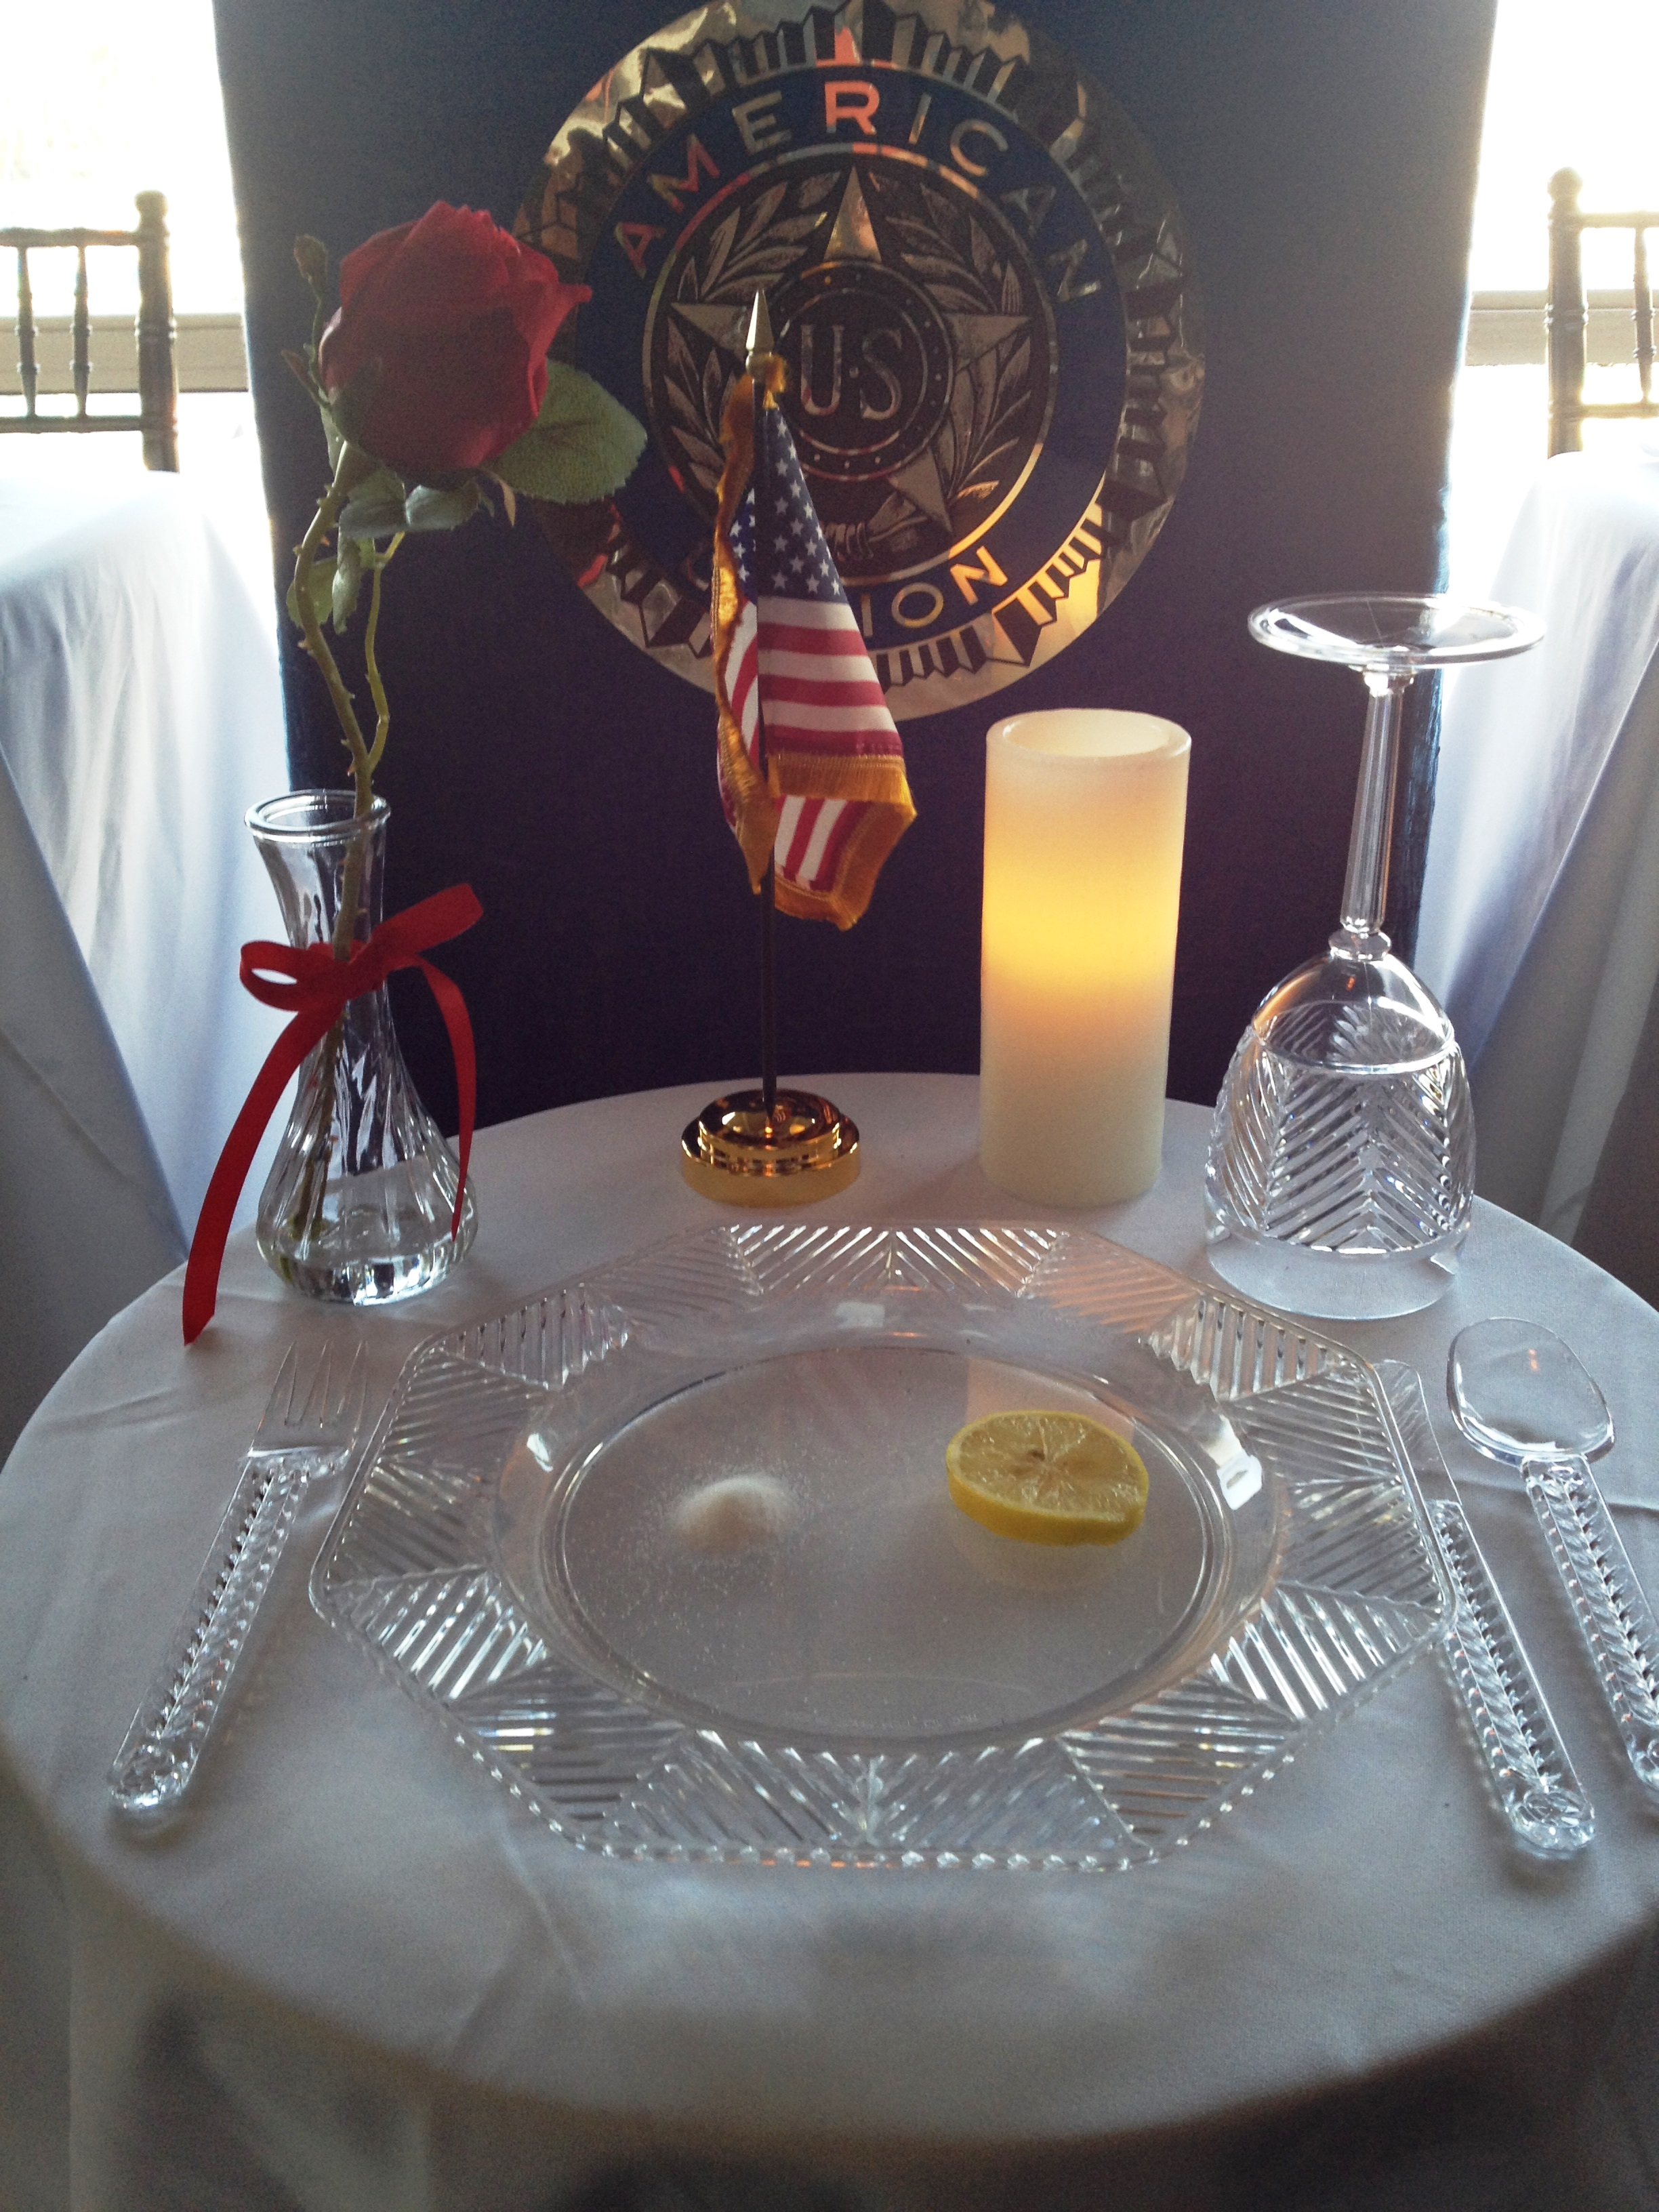 The American Legion pays homage to missing comrades. Photo by Andrea Papagianis